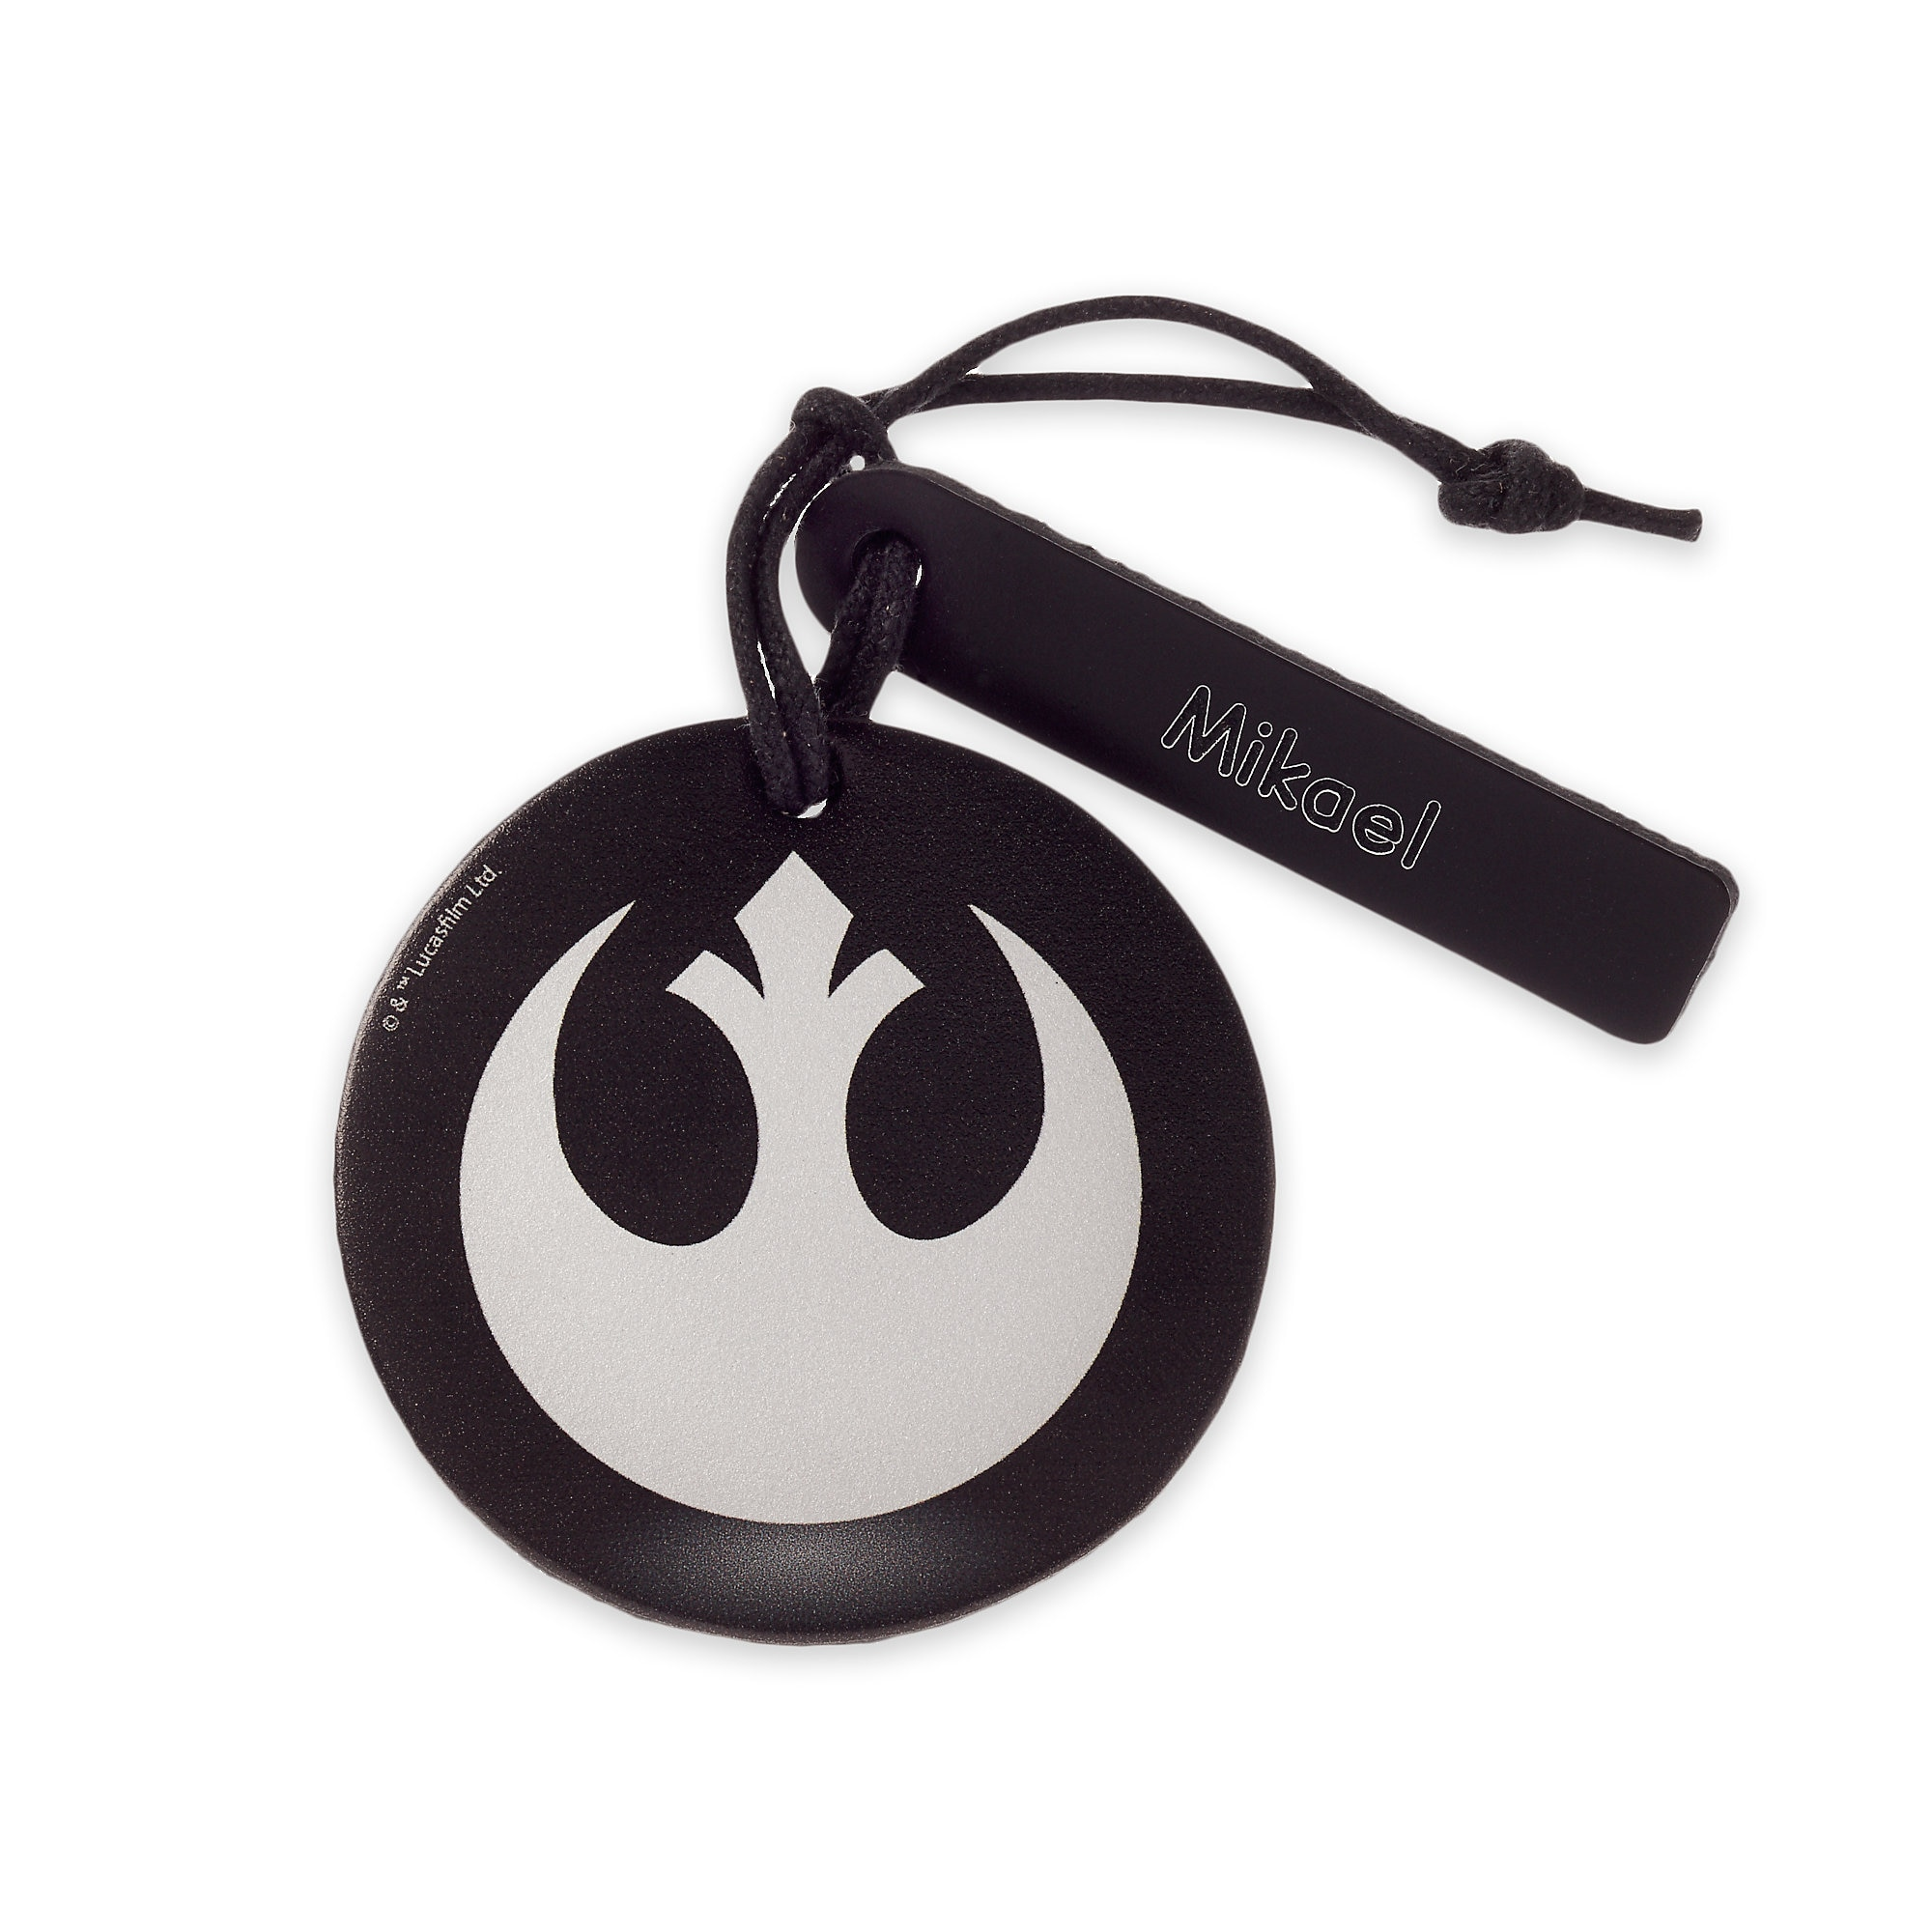 Star Wars Resistance Starbird Leather Luggage Tag - Personalizable